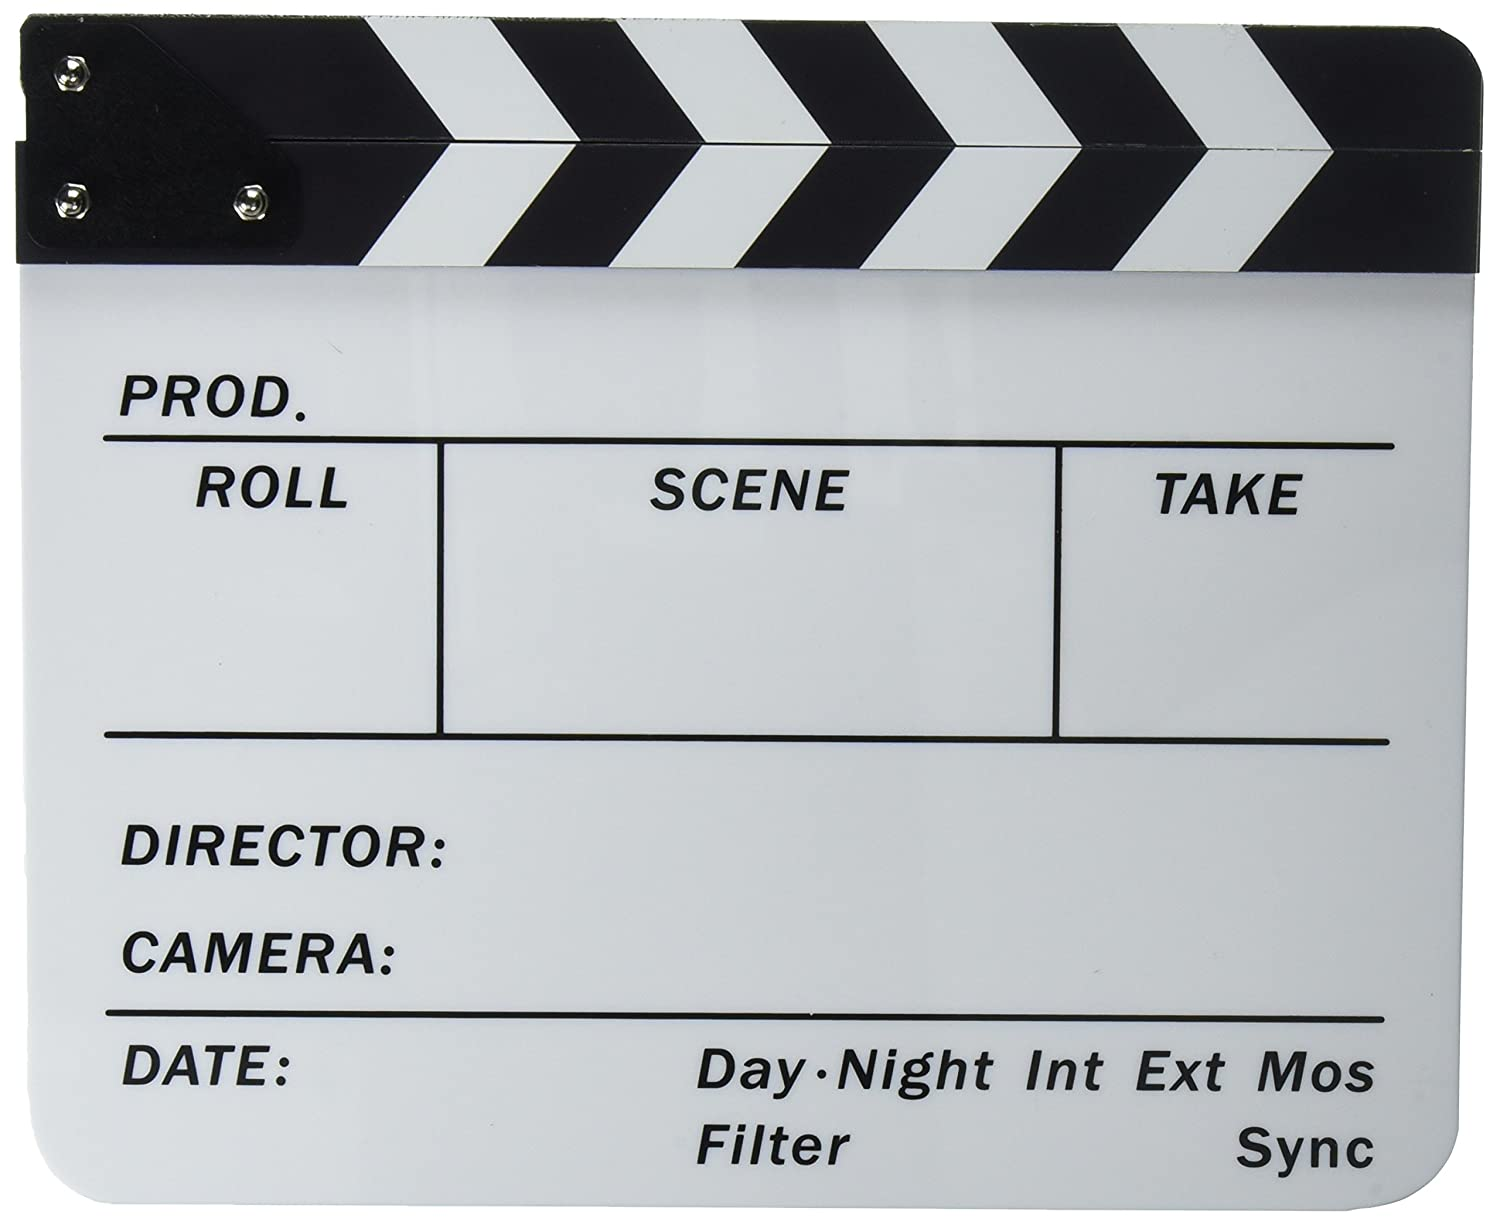 Neewer Professional Wooden Film Movie Clapboard, 7.9 X 7.9 inches/20 X 20 Centimeters Black & White Director Film Slateboard Clapper Board Movie Scene Production Decoration Prop 10093845